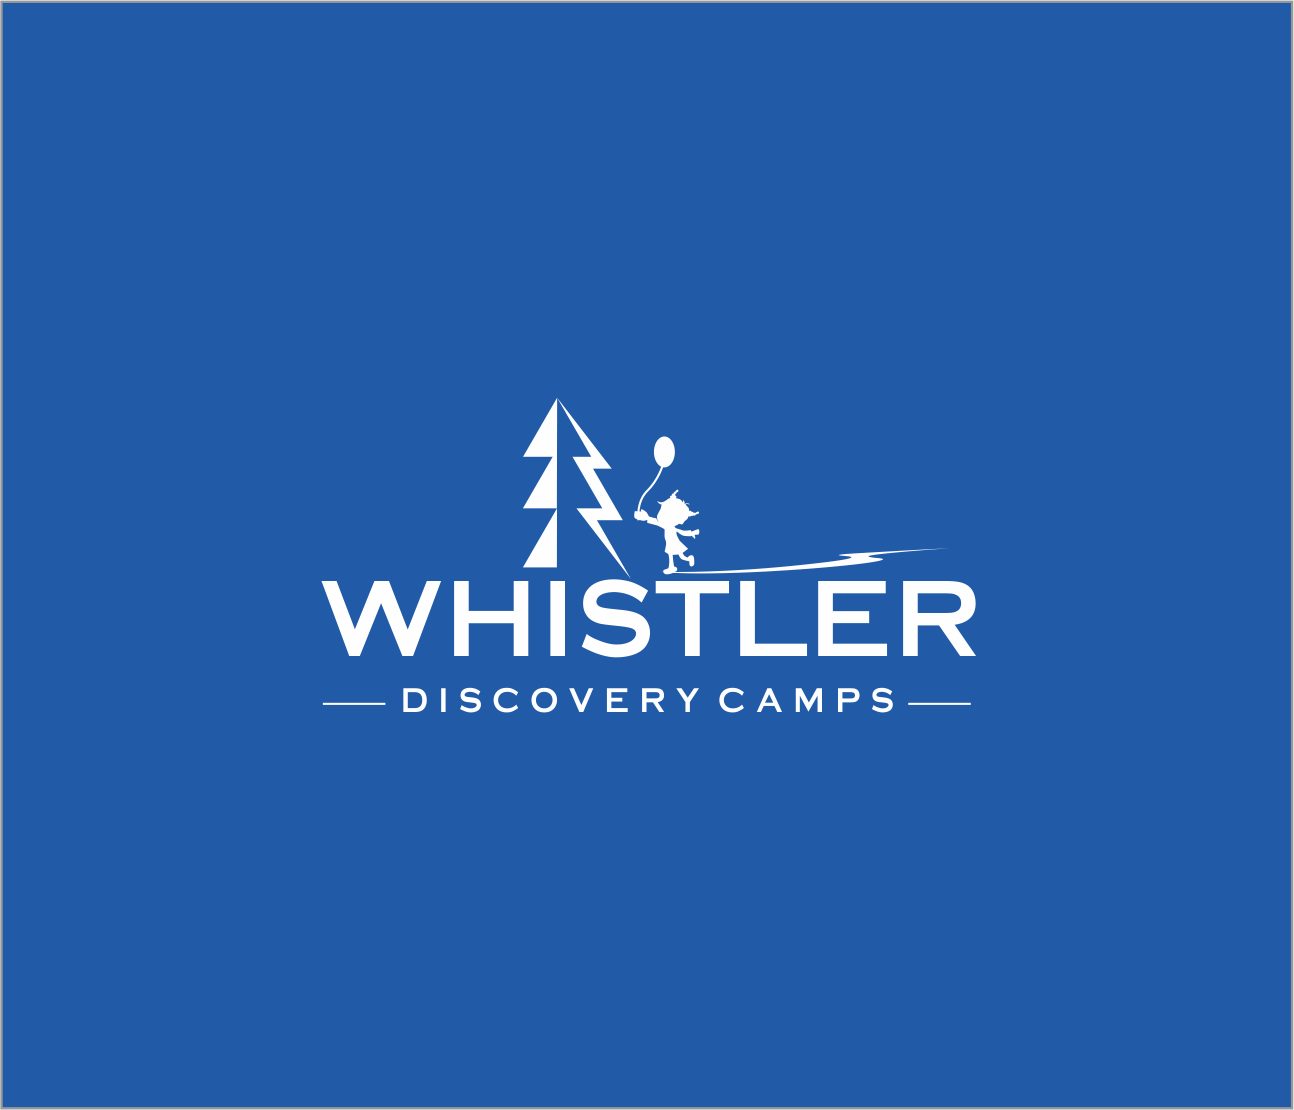 Logo Design by Armada Jamaluddin - Entry No. 140 in the Logo Design Contest Captivating Logo Design for Whistler Discovery Camps.